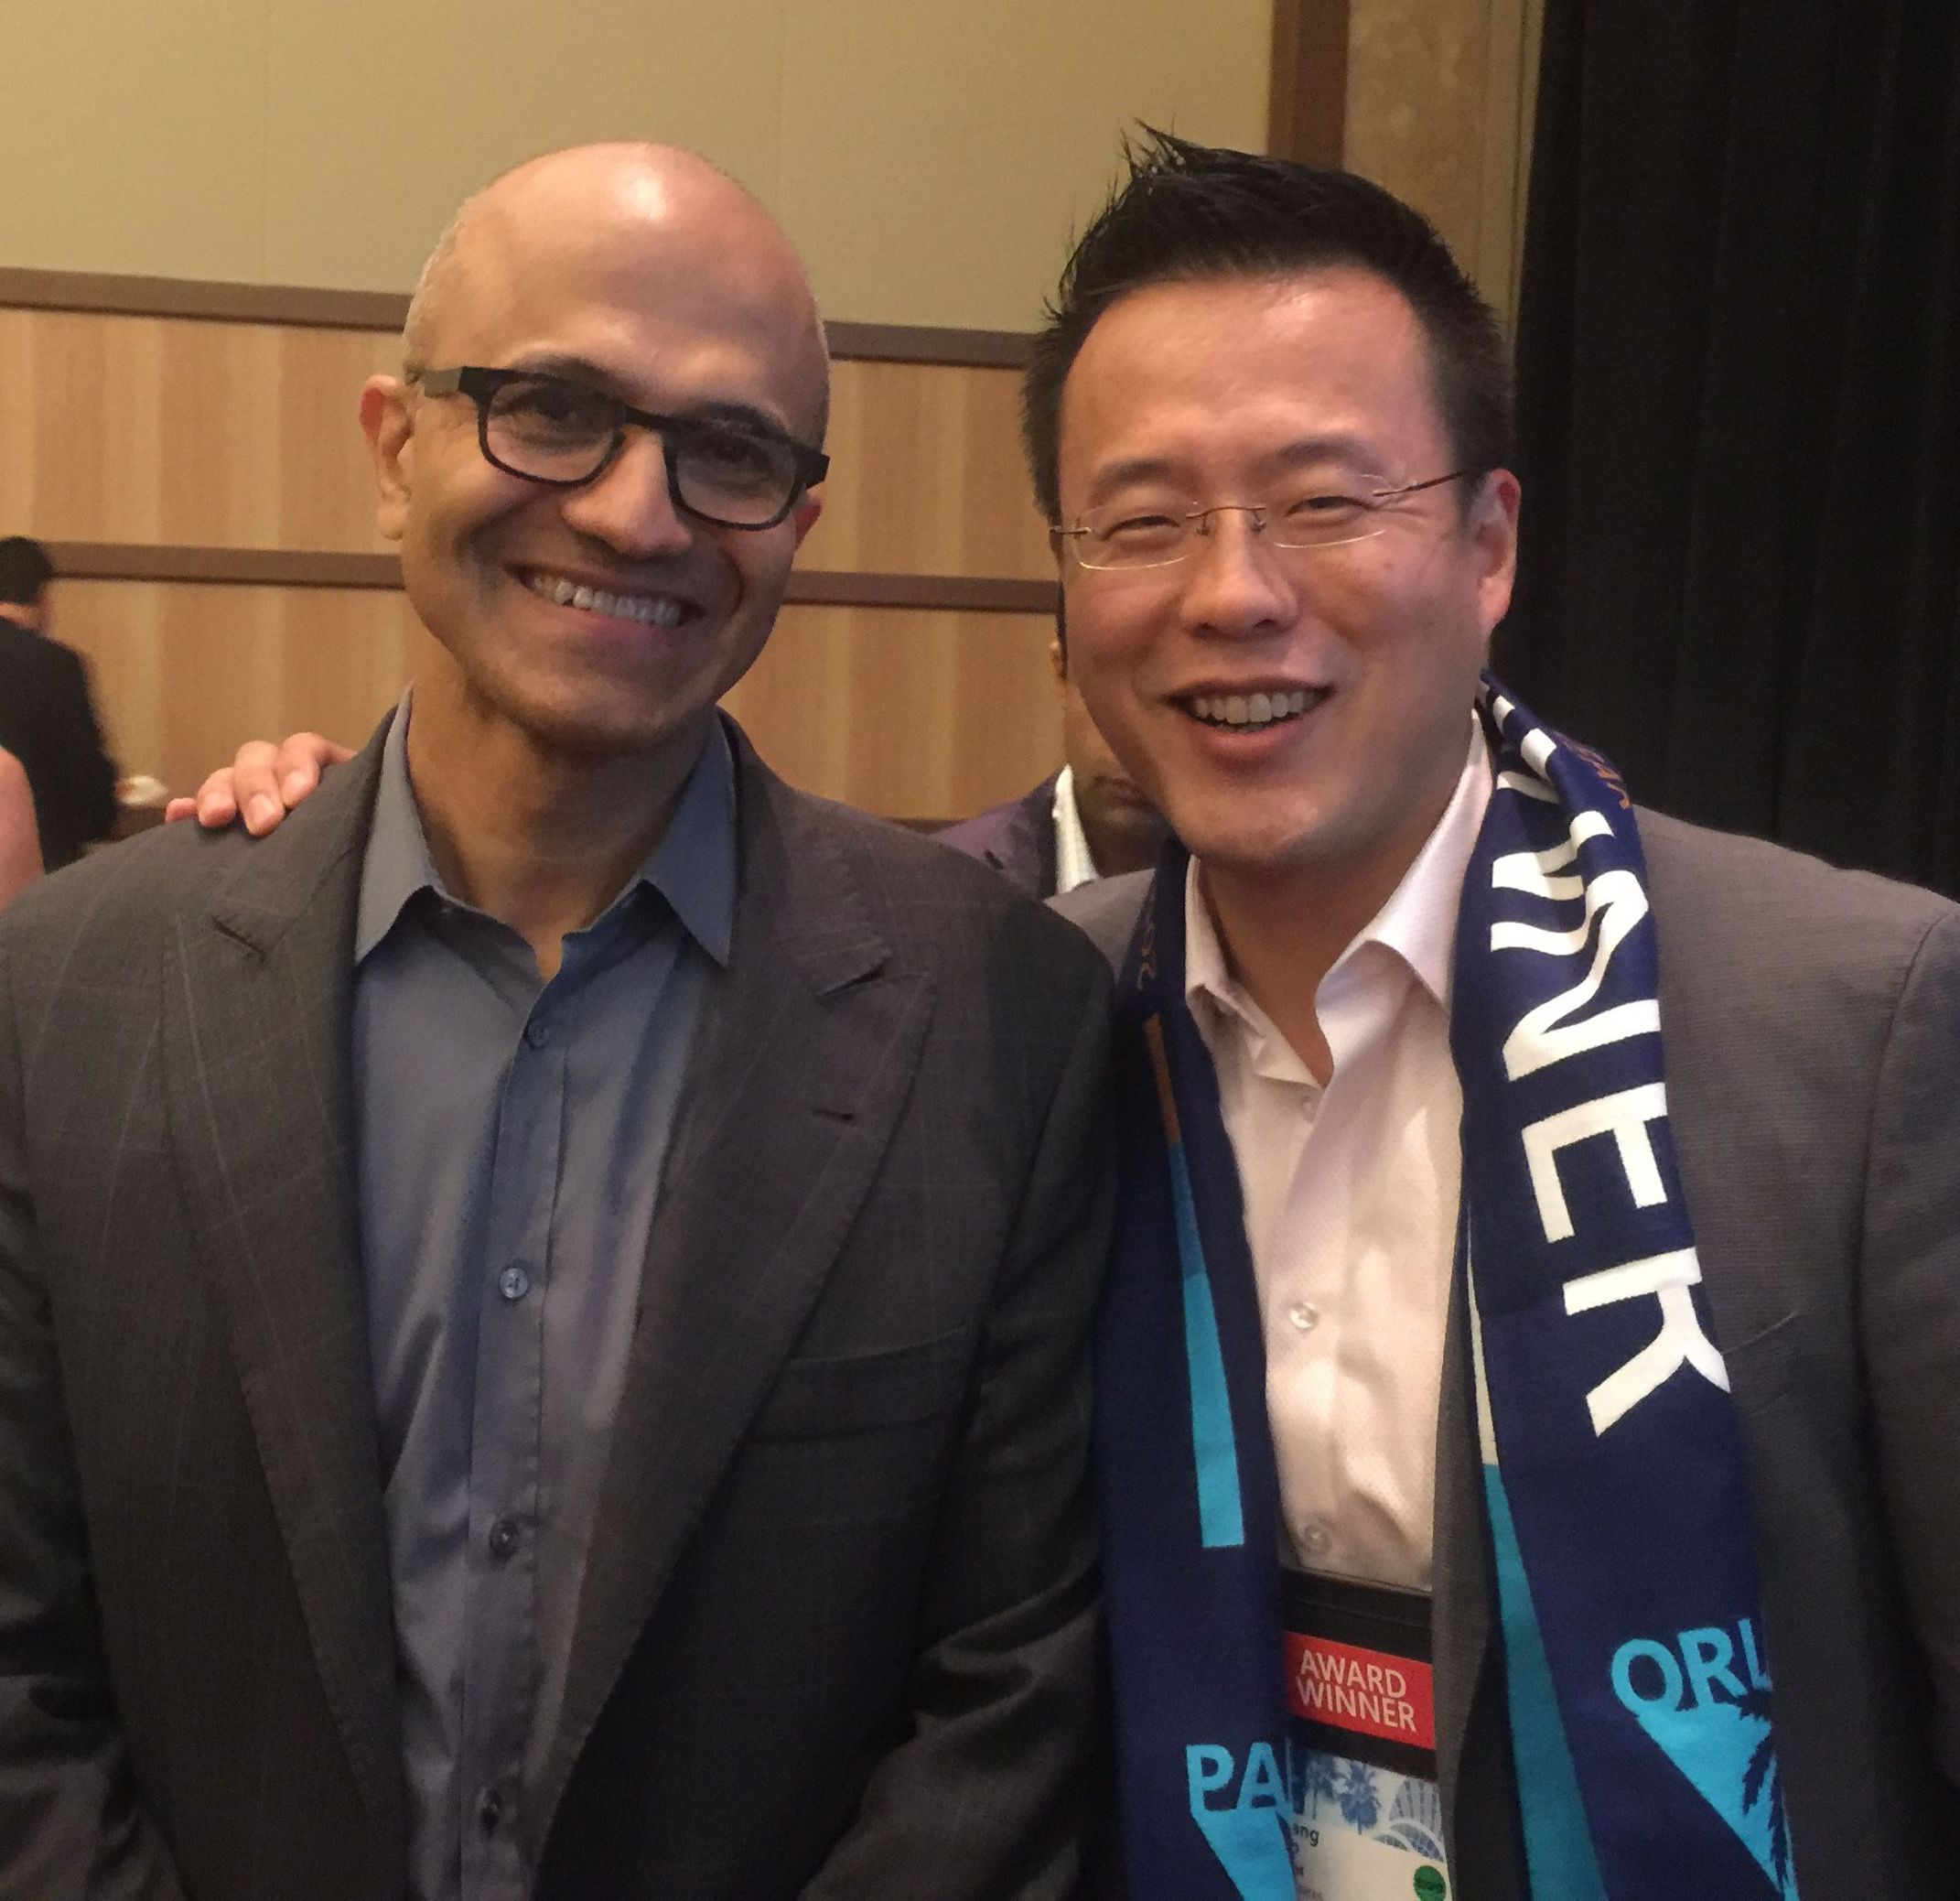 Microsoft CEO Satya Nadella and AvePoint Co-CEO and Co-Founder Dr. Tianyi (TJ) Jiang)